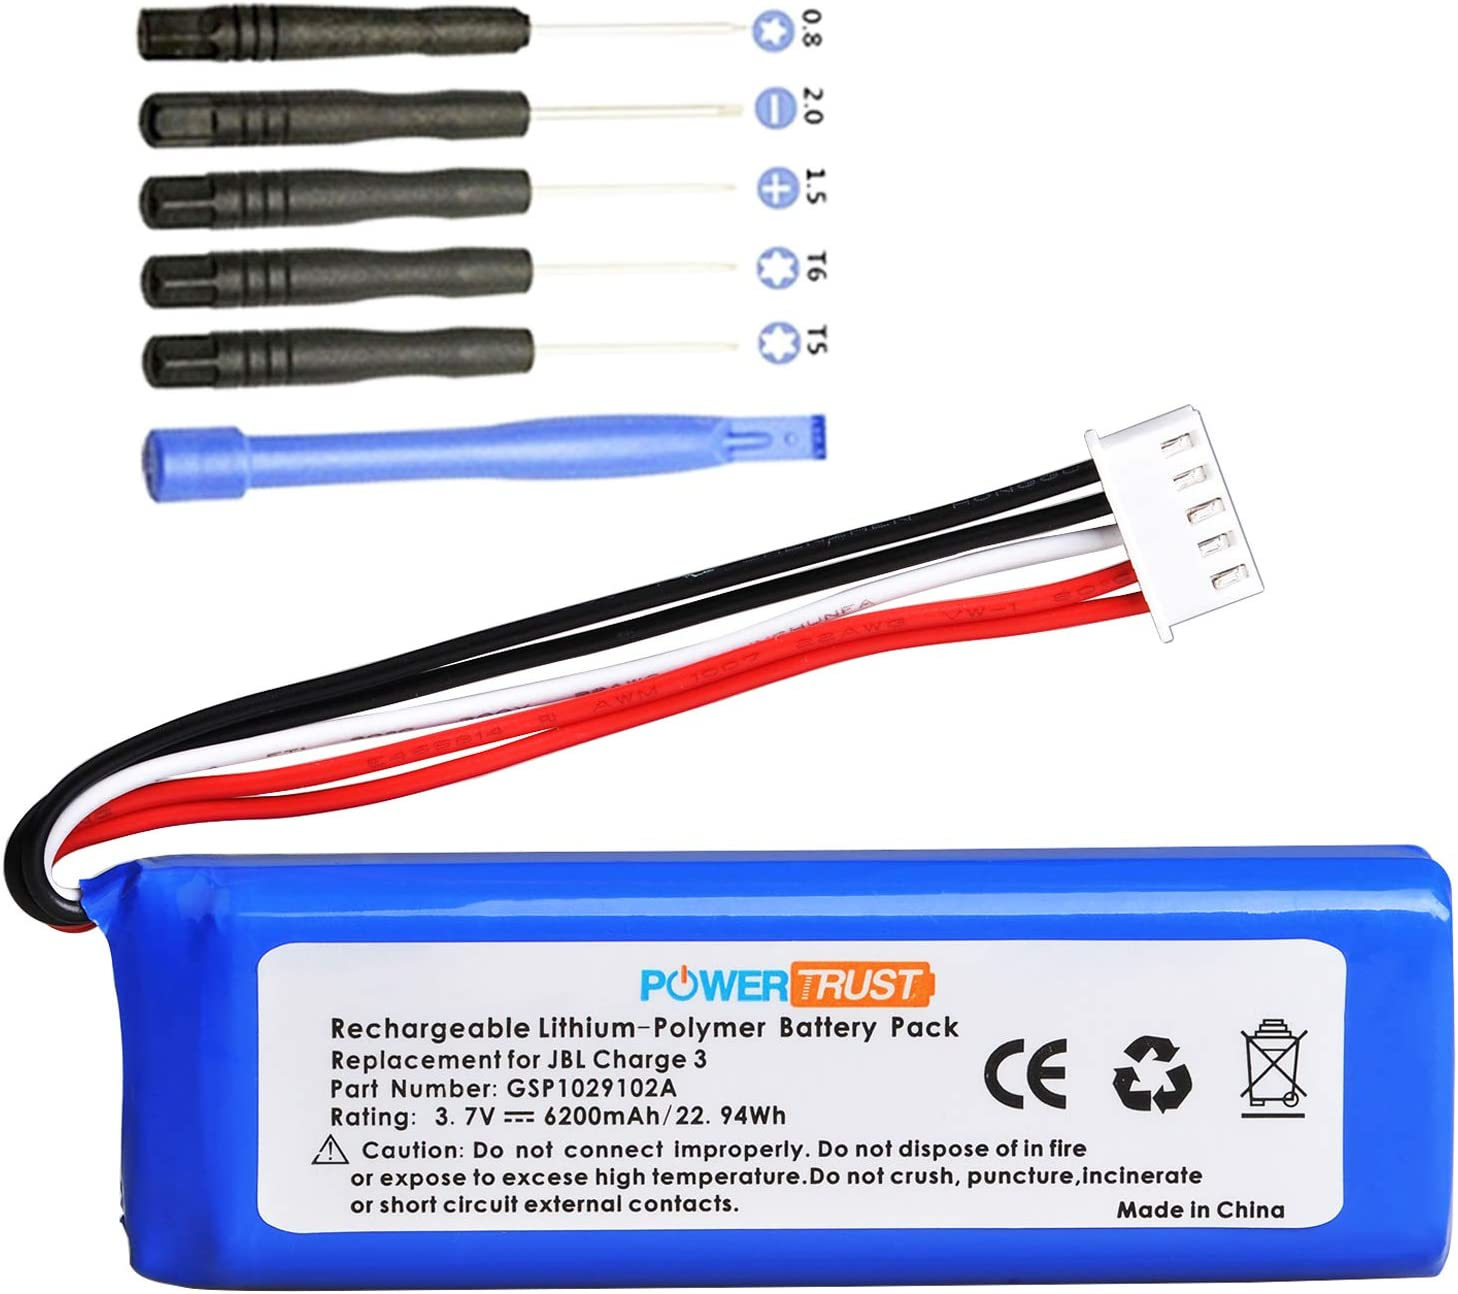 PowerTrust 3.7V 6200mAh Replacement Battery Par Charge Department Quality inspection store for 3 JBL